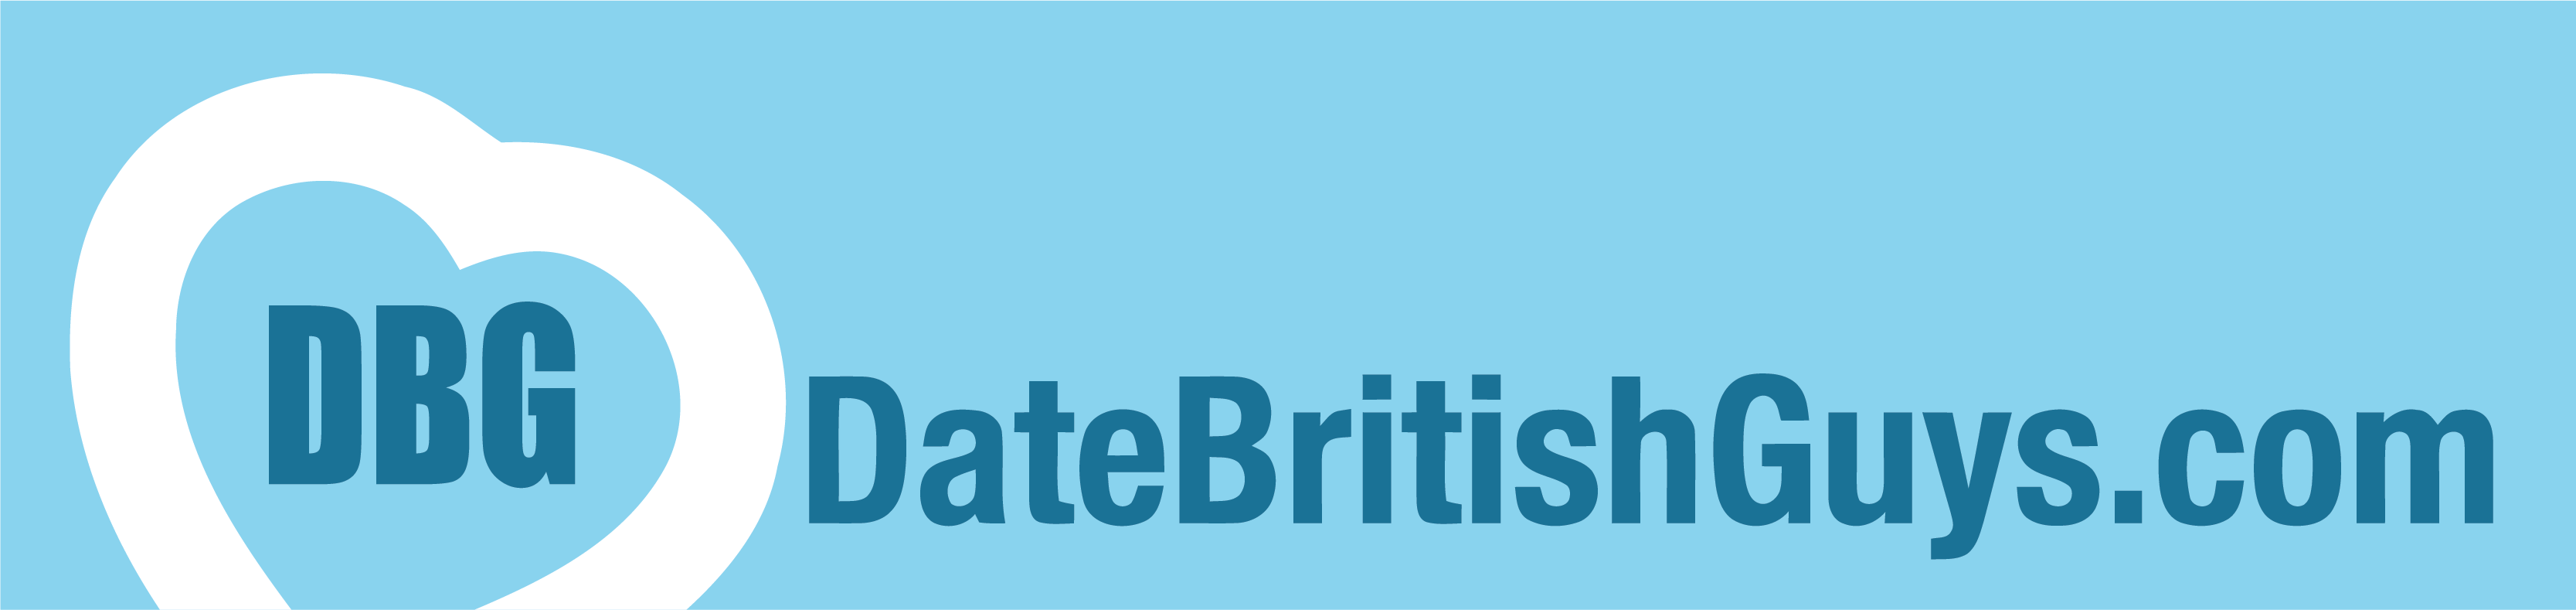 date british guys logo